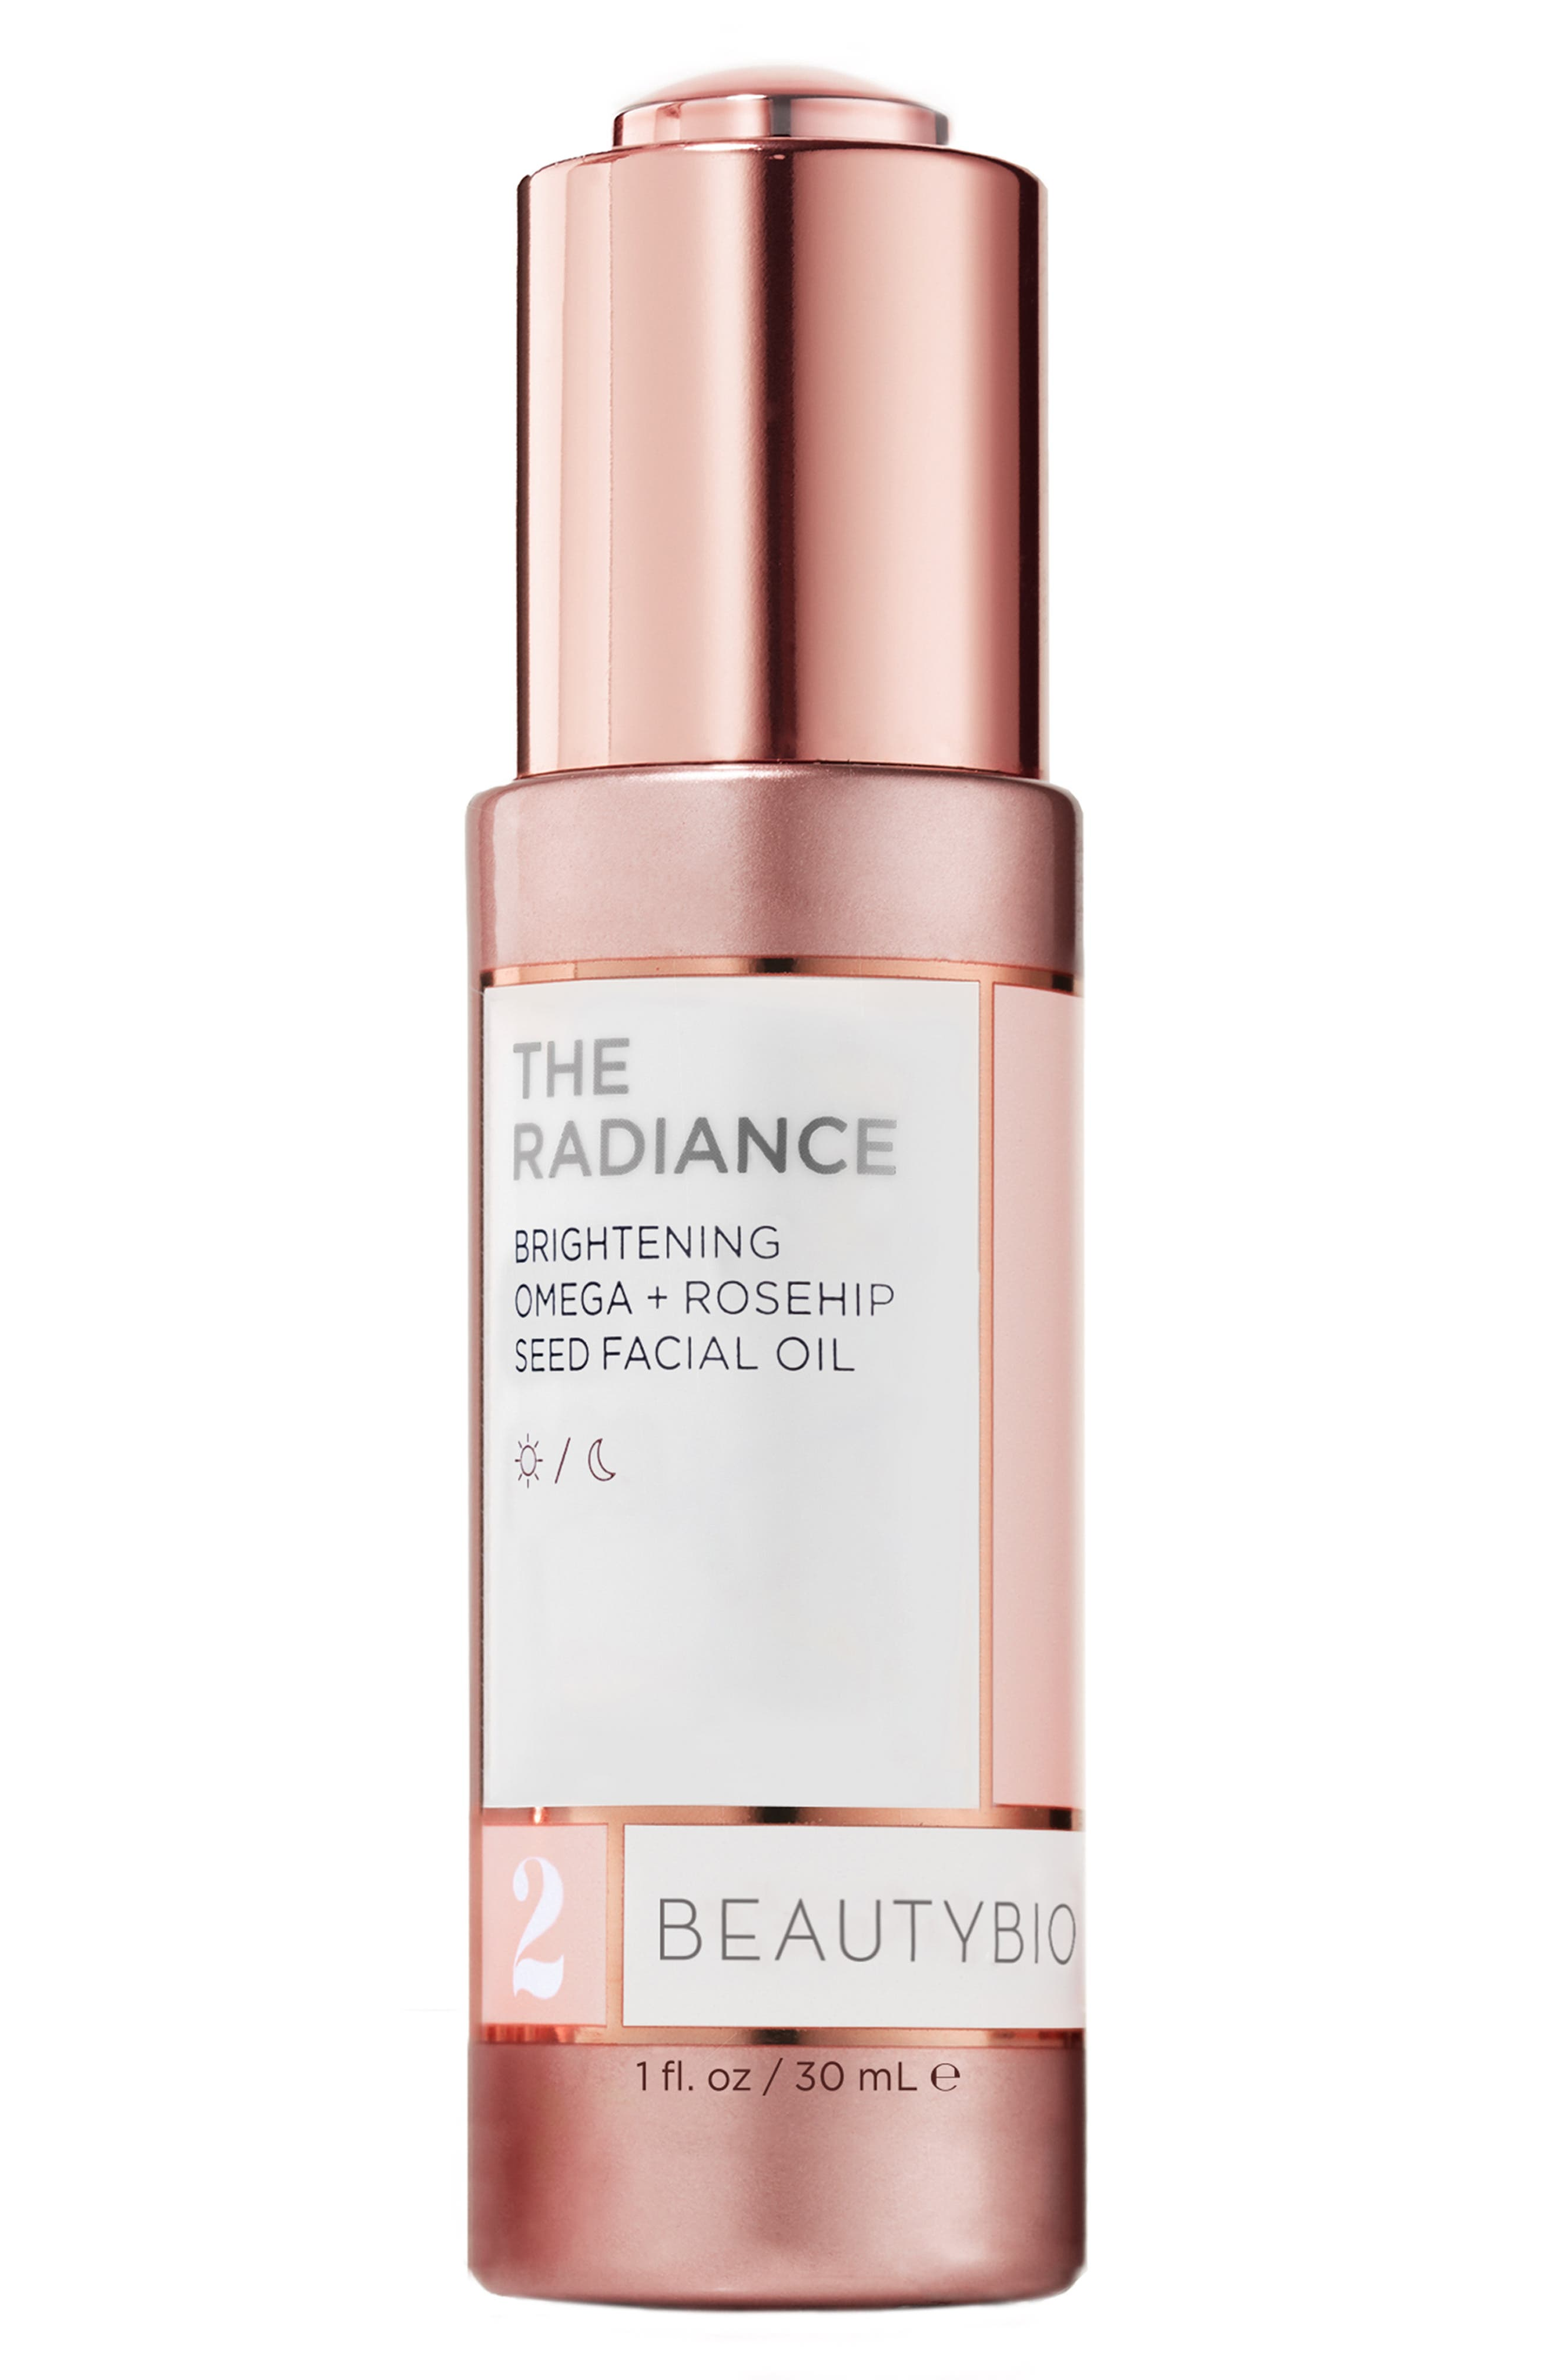 The Radiance Brightening Omega + Rosehip Seed Facial Oil